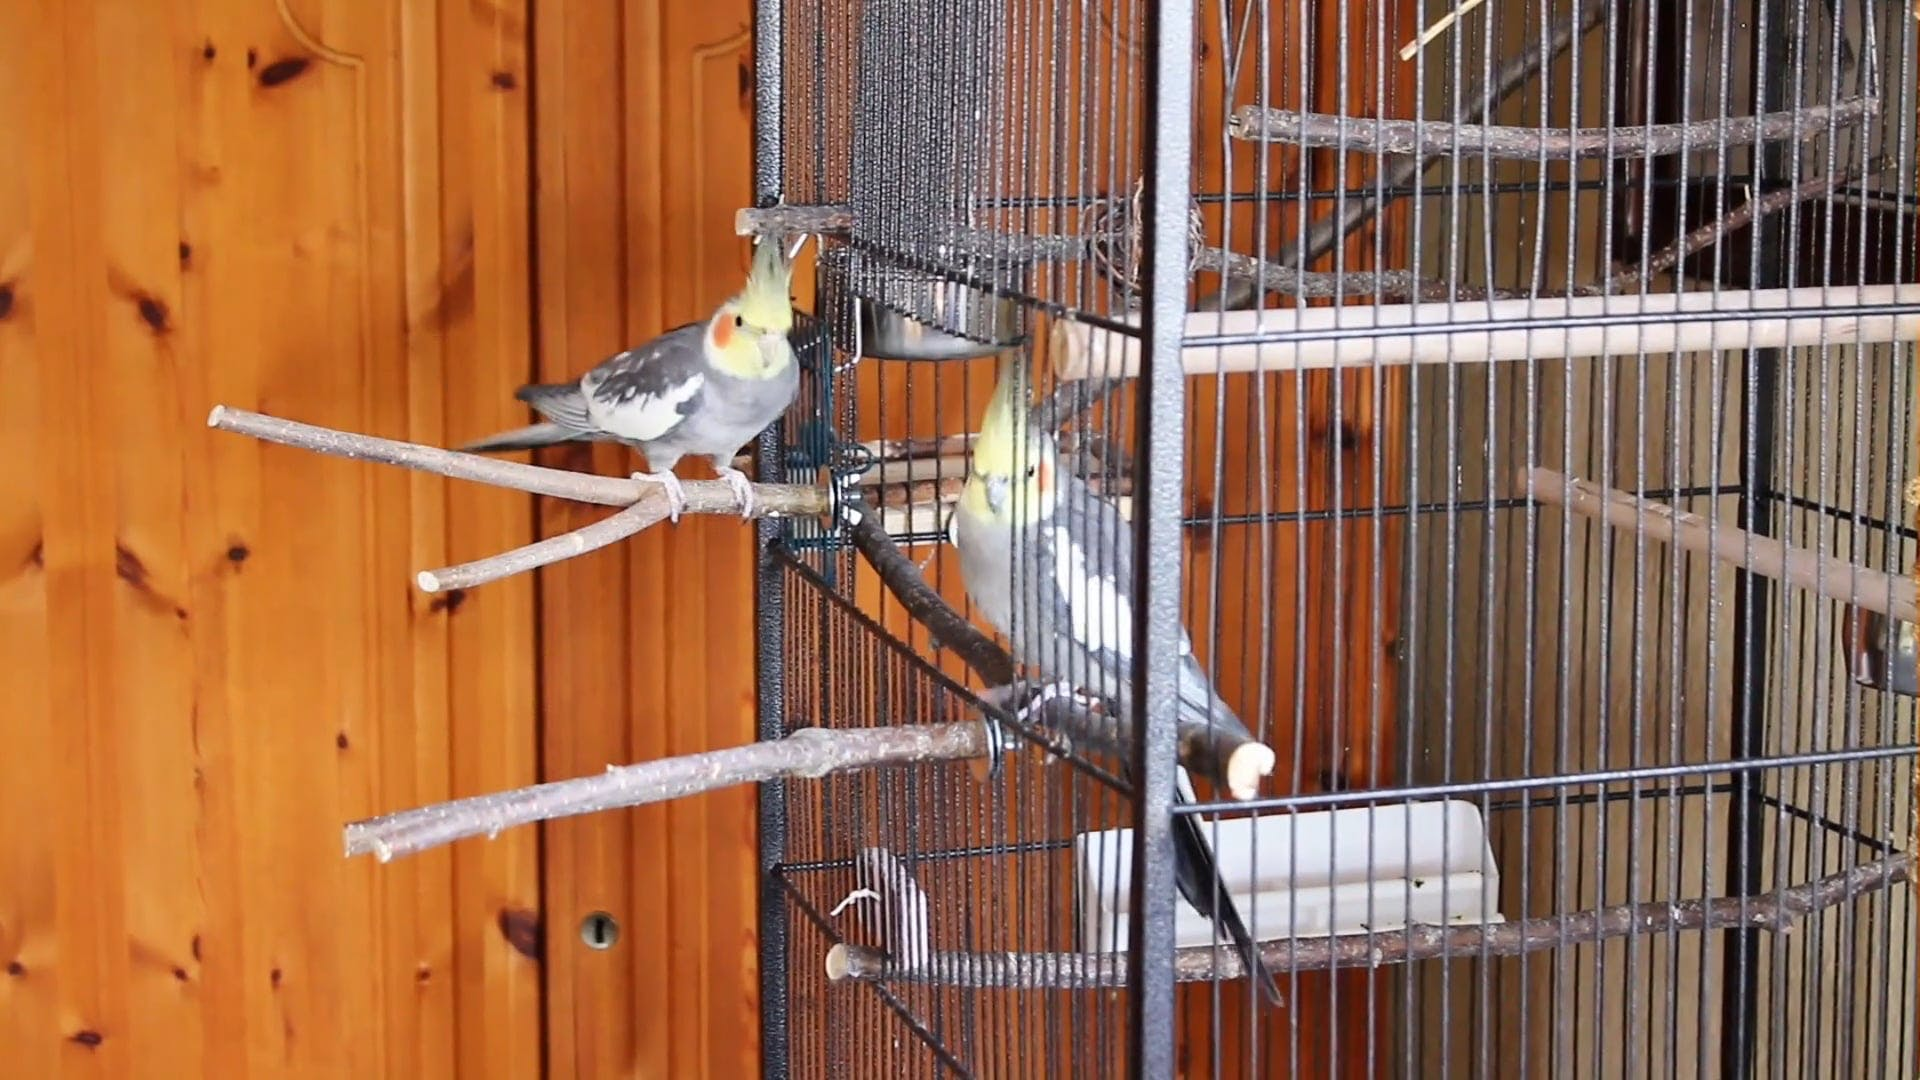 Two Beautiful Birds In A Cage